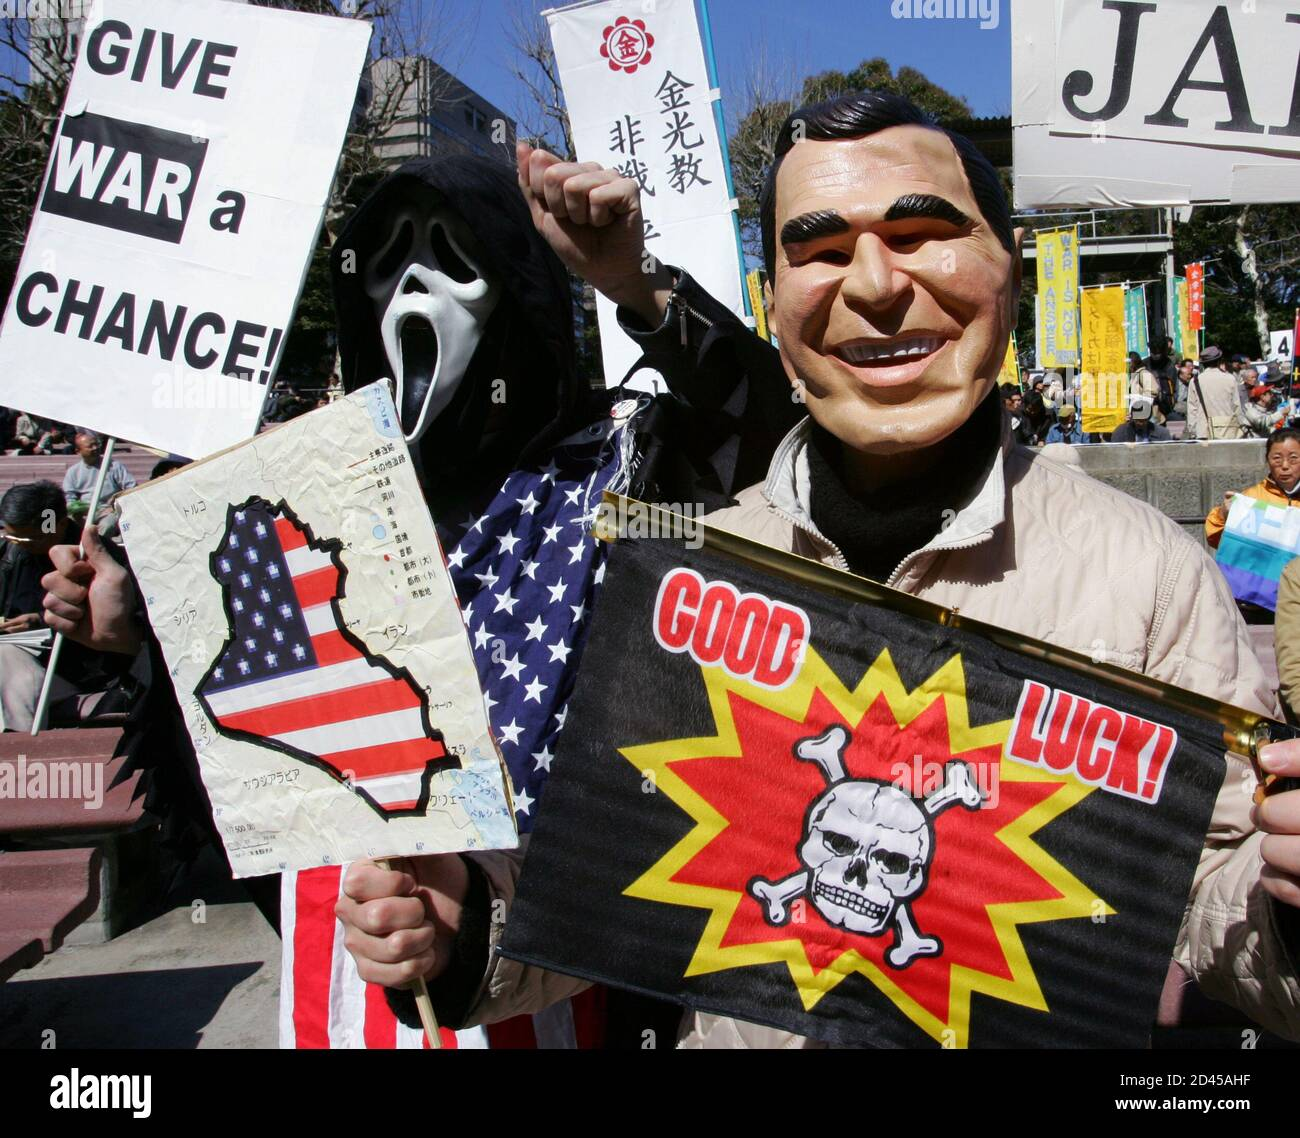 A protester (R) wearing a mask of U.S. President George W. Bush holds anti-U.S. placards as his fellow protester raises his fists during a rally in Tokyo March 19, 2005. March 20 marks the second anniversary of the U.S.-led war on Iraq. About 4,500 protesters gathered for the rally demanding the withdrawal of troops from Iraq, according to organisers. REUTERS/Issei Kato  IK/CCK Stock Photo